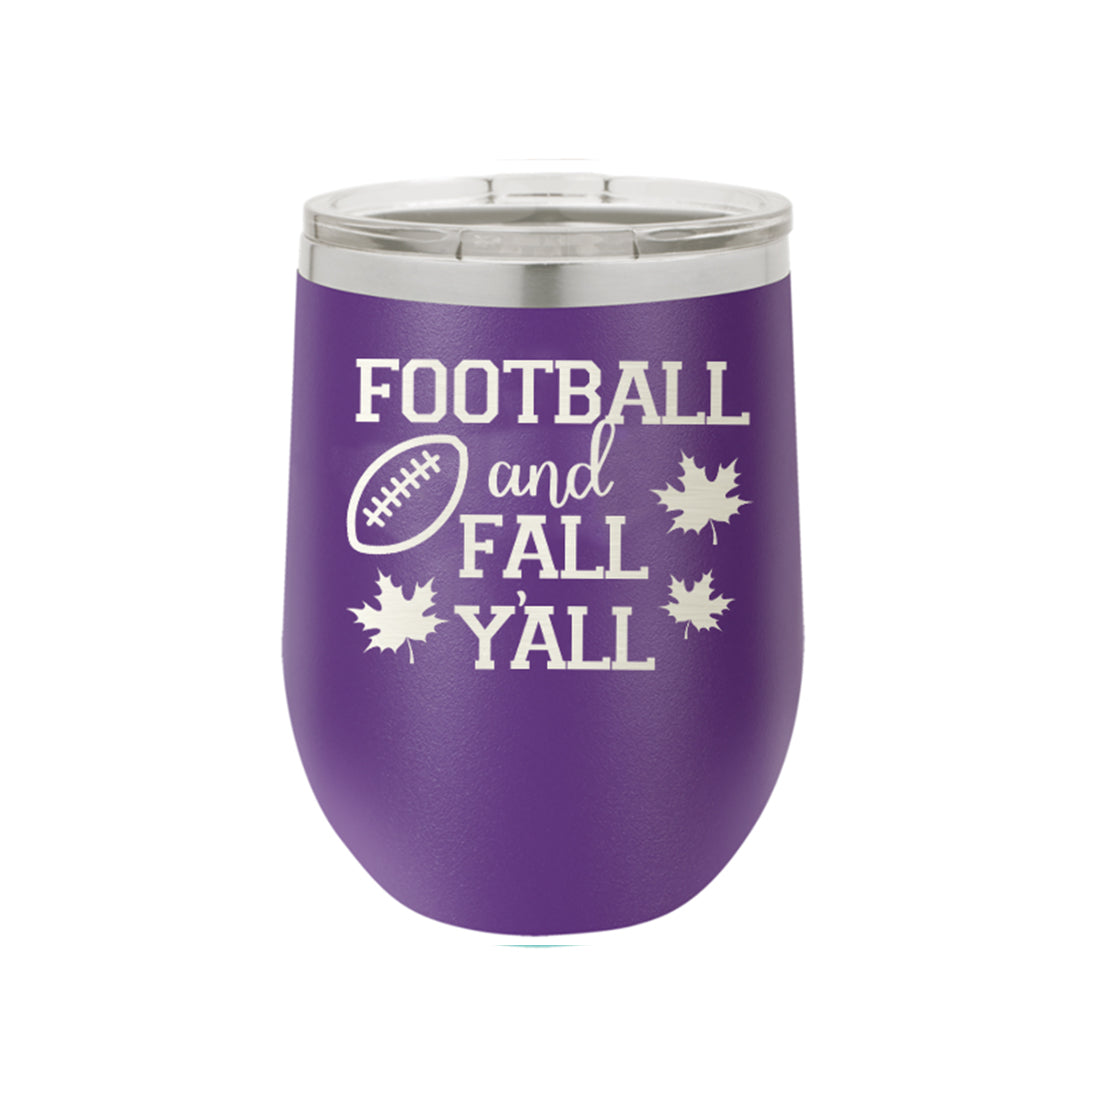 Football & Fall Y'all Insulated Wine Tumbler,Drinkware - Dirt Road Divas Boutique